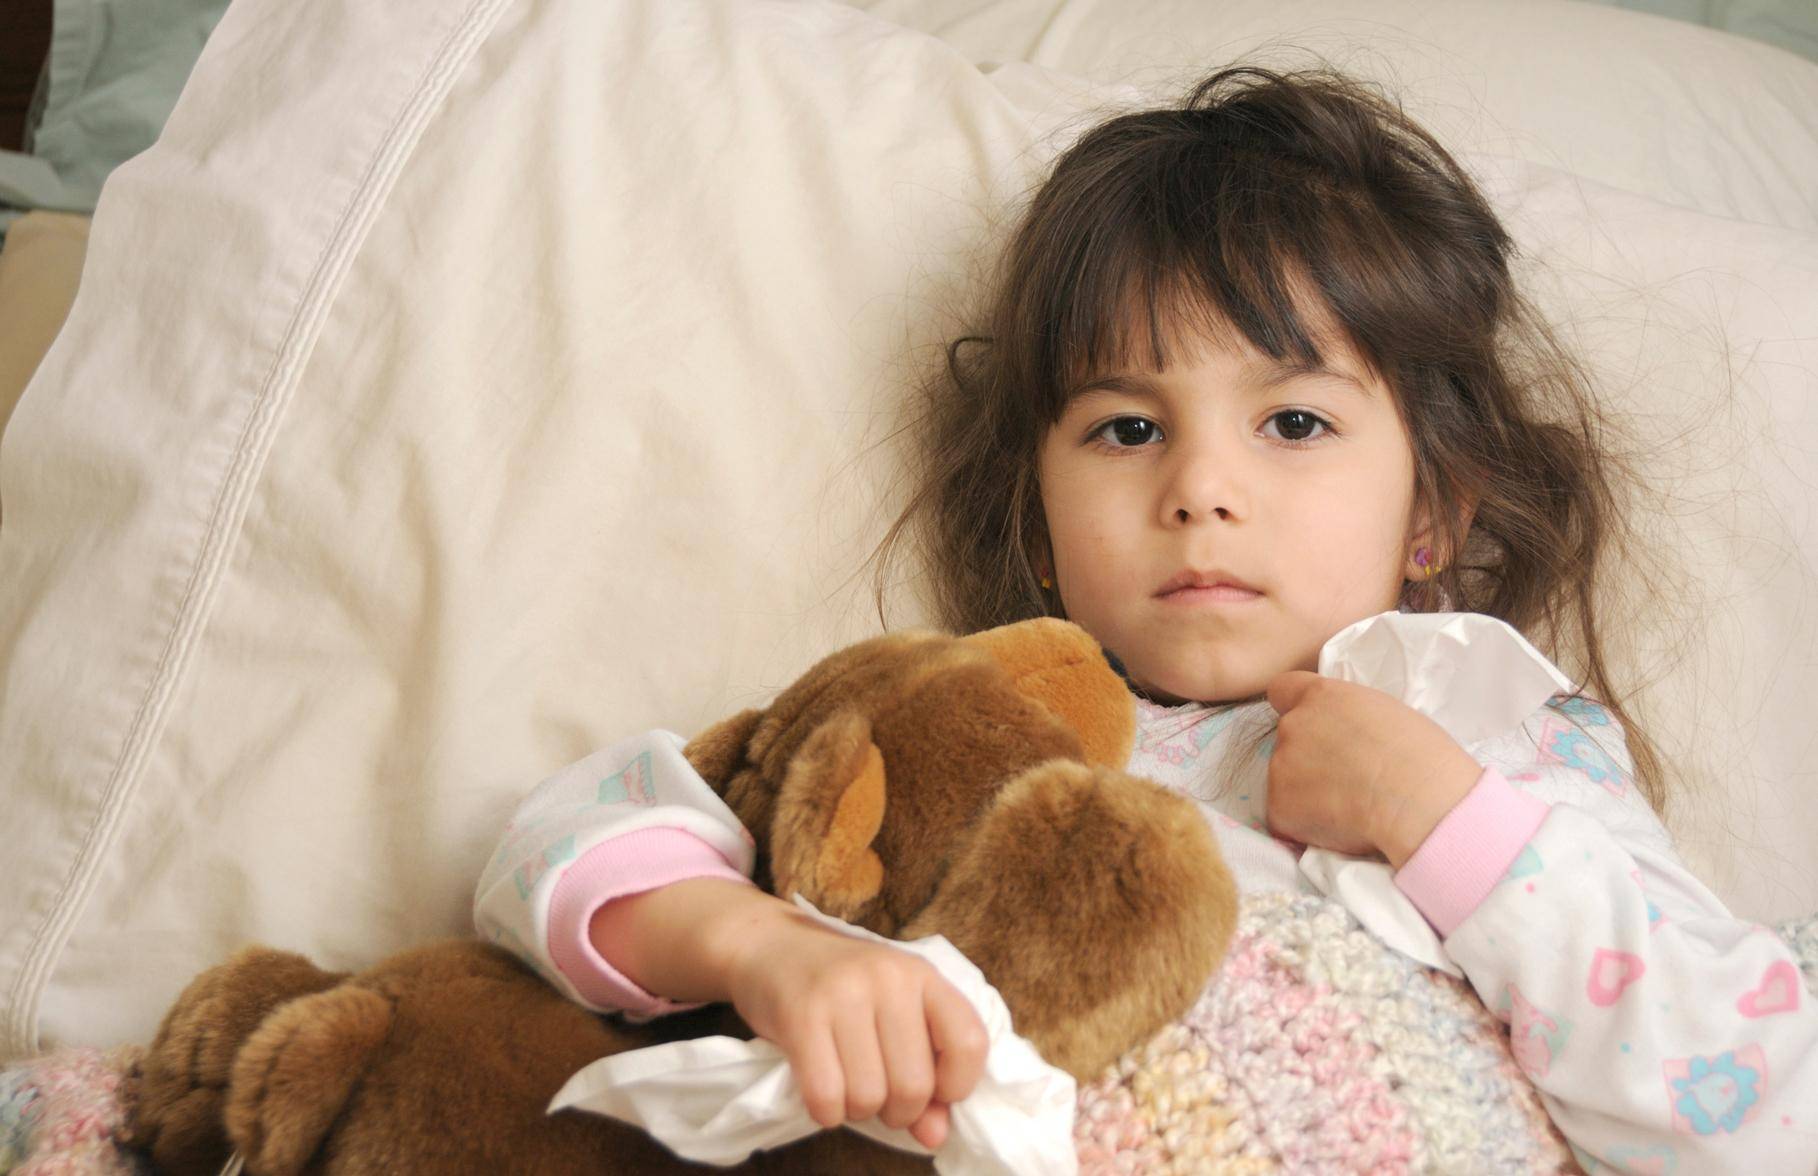 5 Home Remedies To Use When Your Toddler Catches A Cold